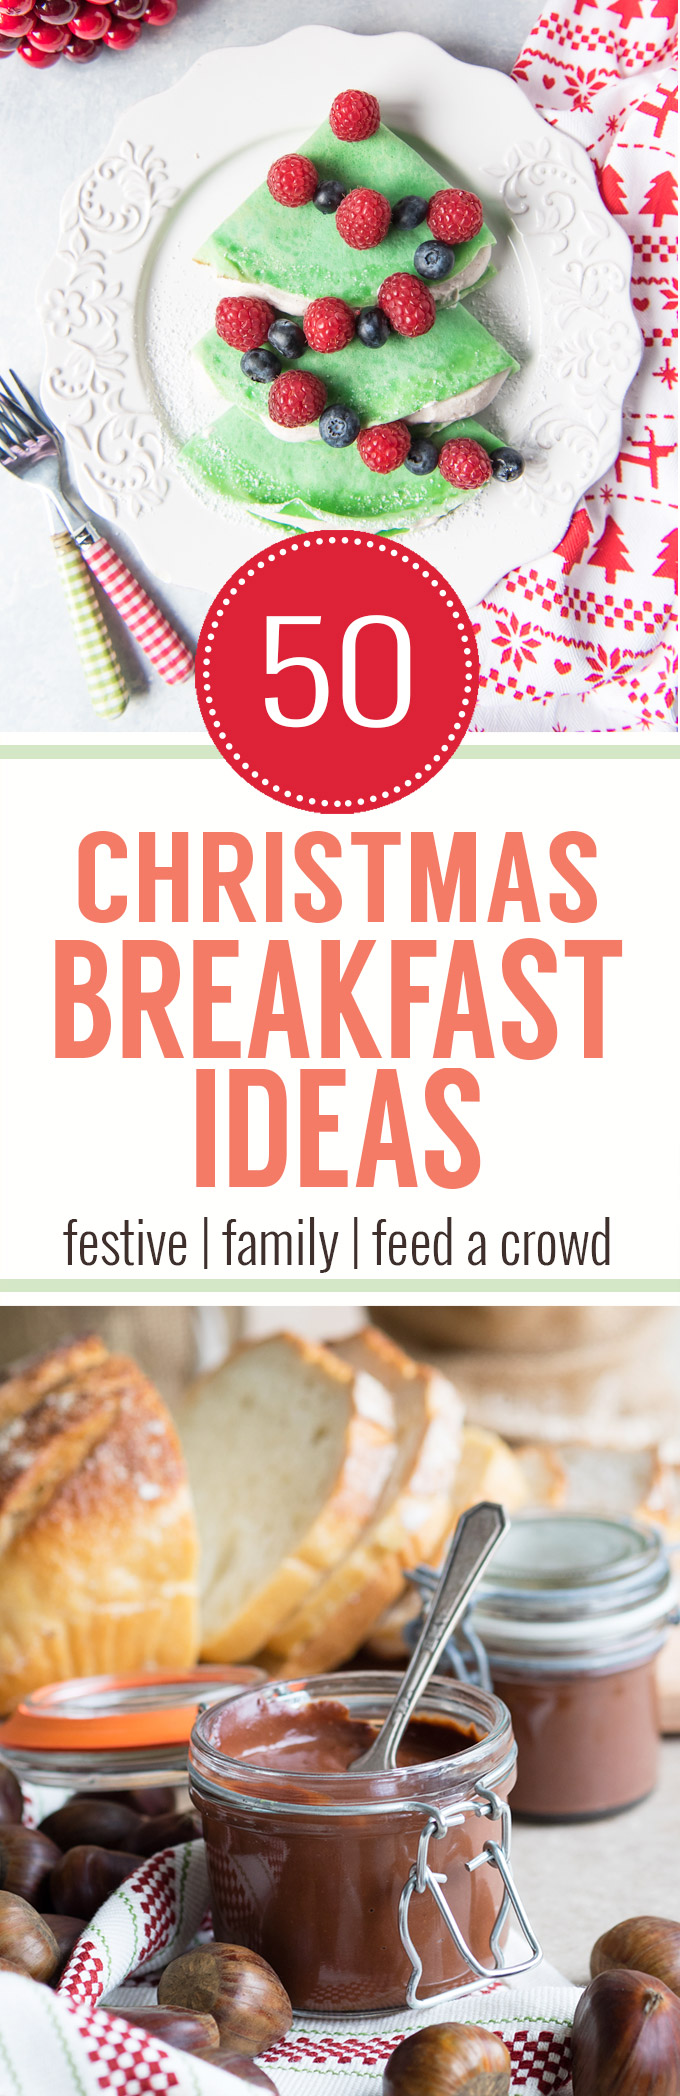 50+ Christmas Breakfast Ideas - festive, family friendly, feed a crowd, casseroles, and many more recipes for Christmas Morning. From www.theworktop.com.